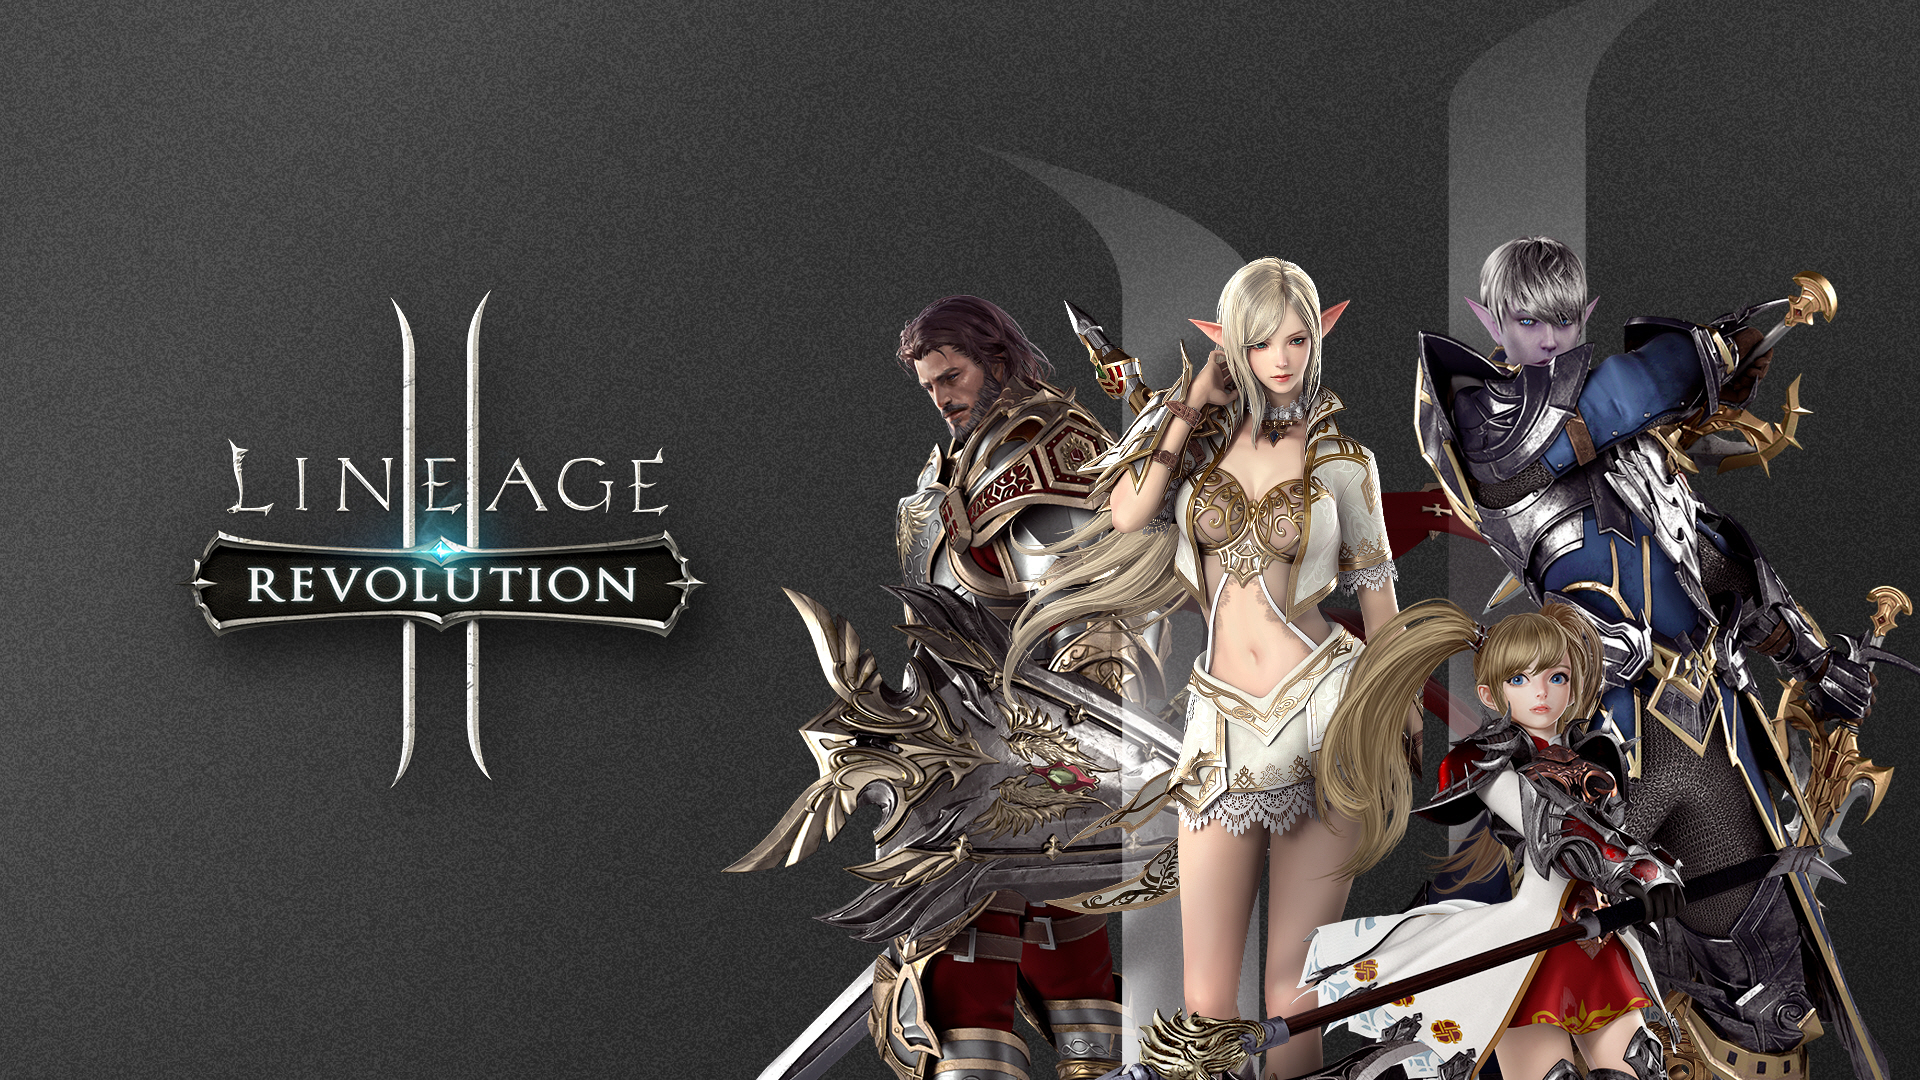 10 things that Lineage 2: Revolution fixes about the MMO genre on mobile